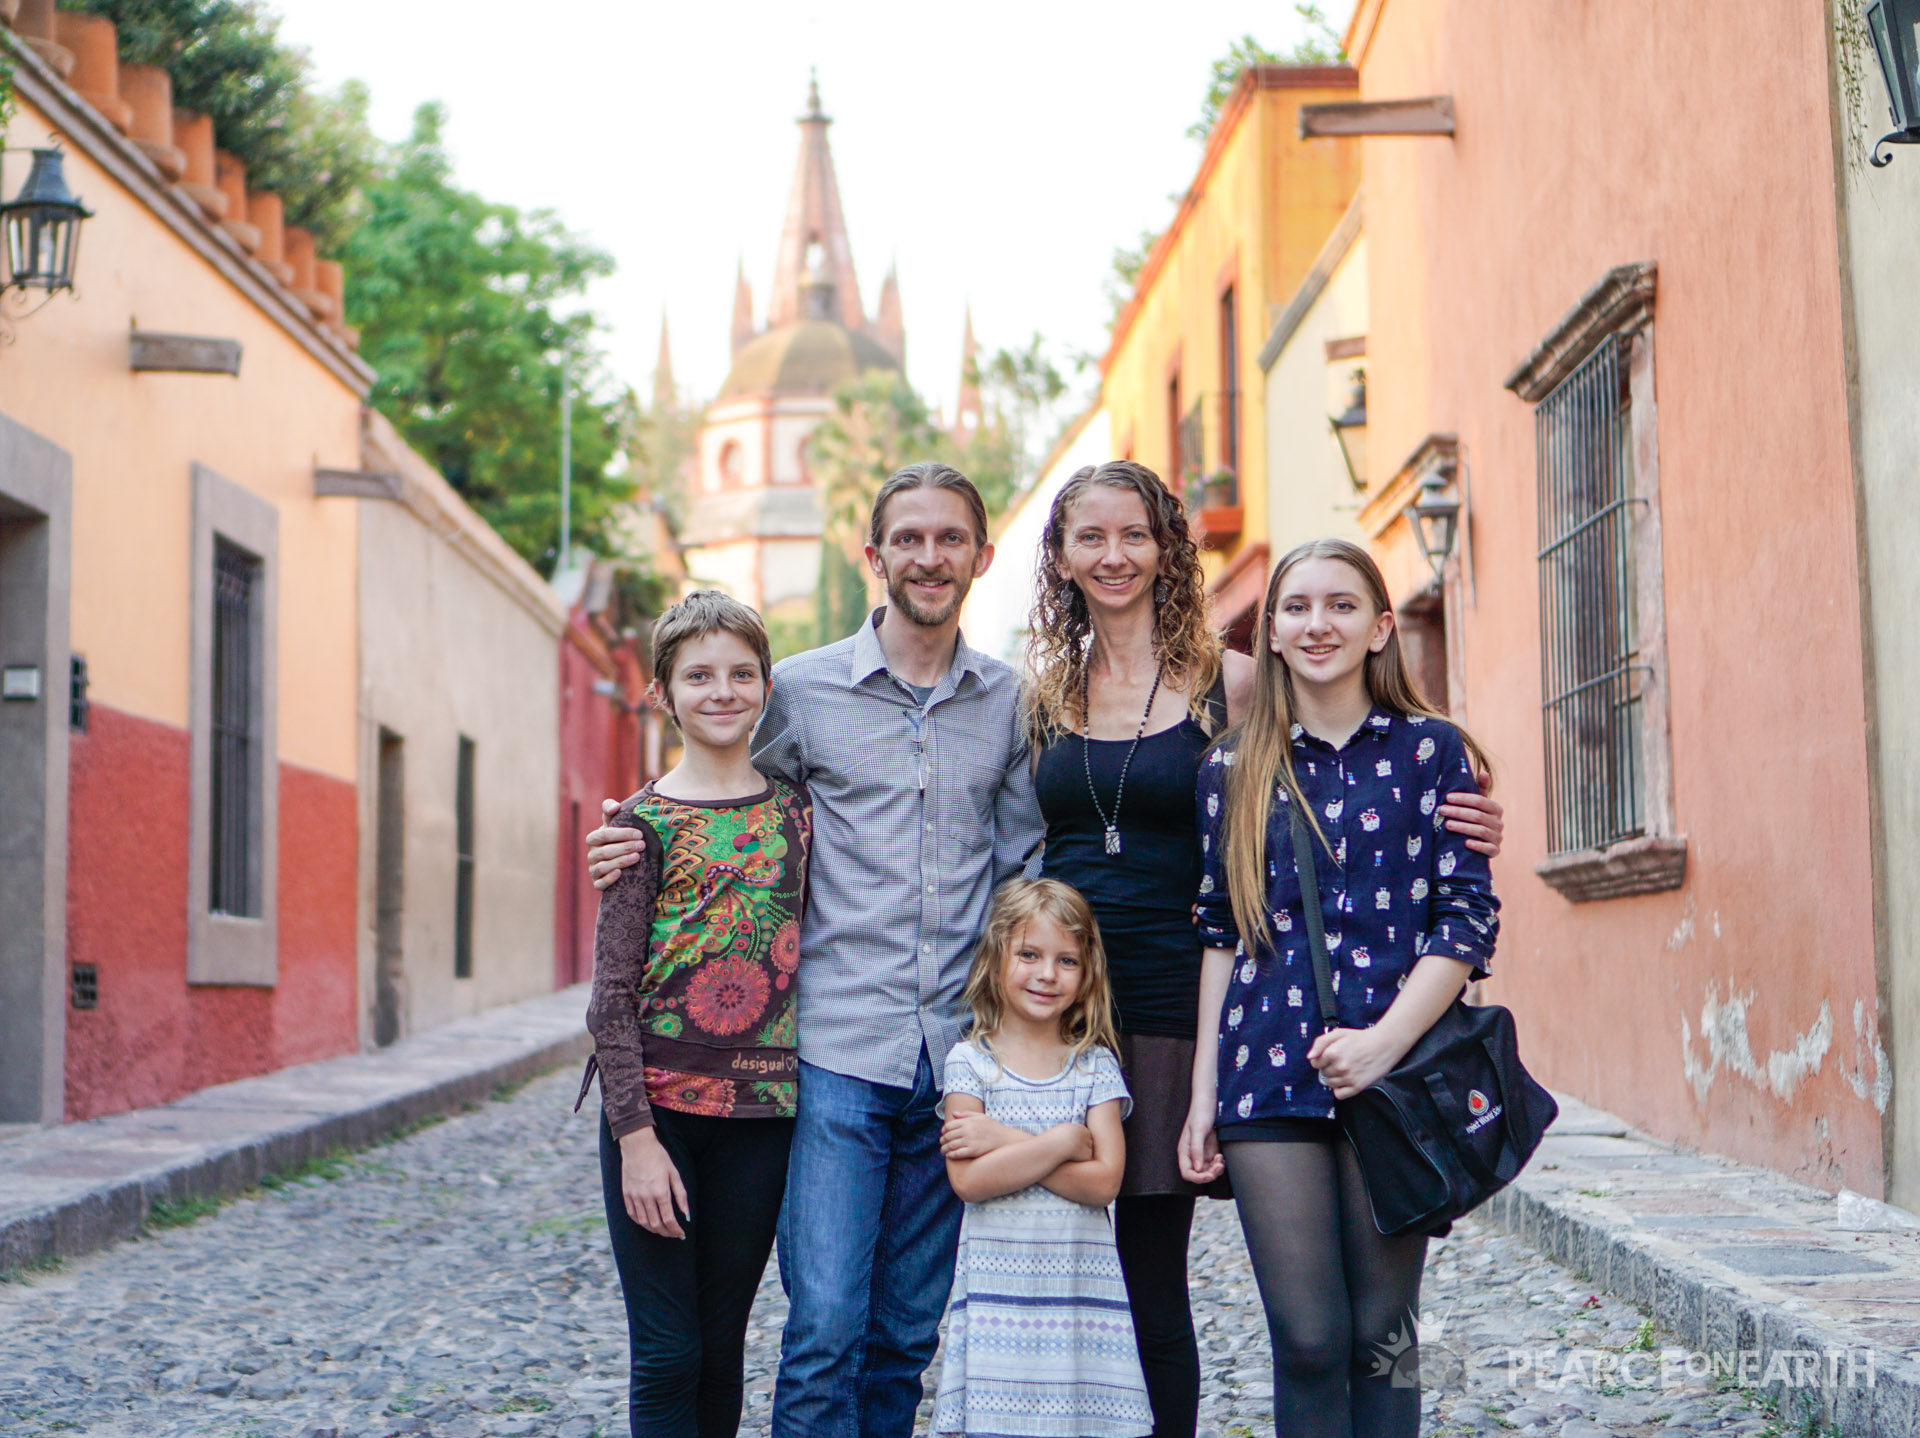 The Pearce Family has been traveling the world together for 11+ years to 45+ countries while worldschooling and running an online business.